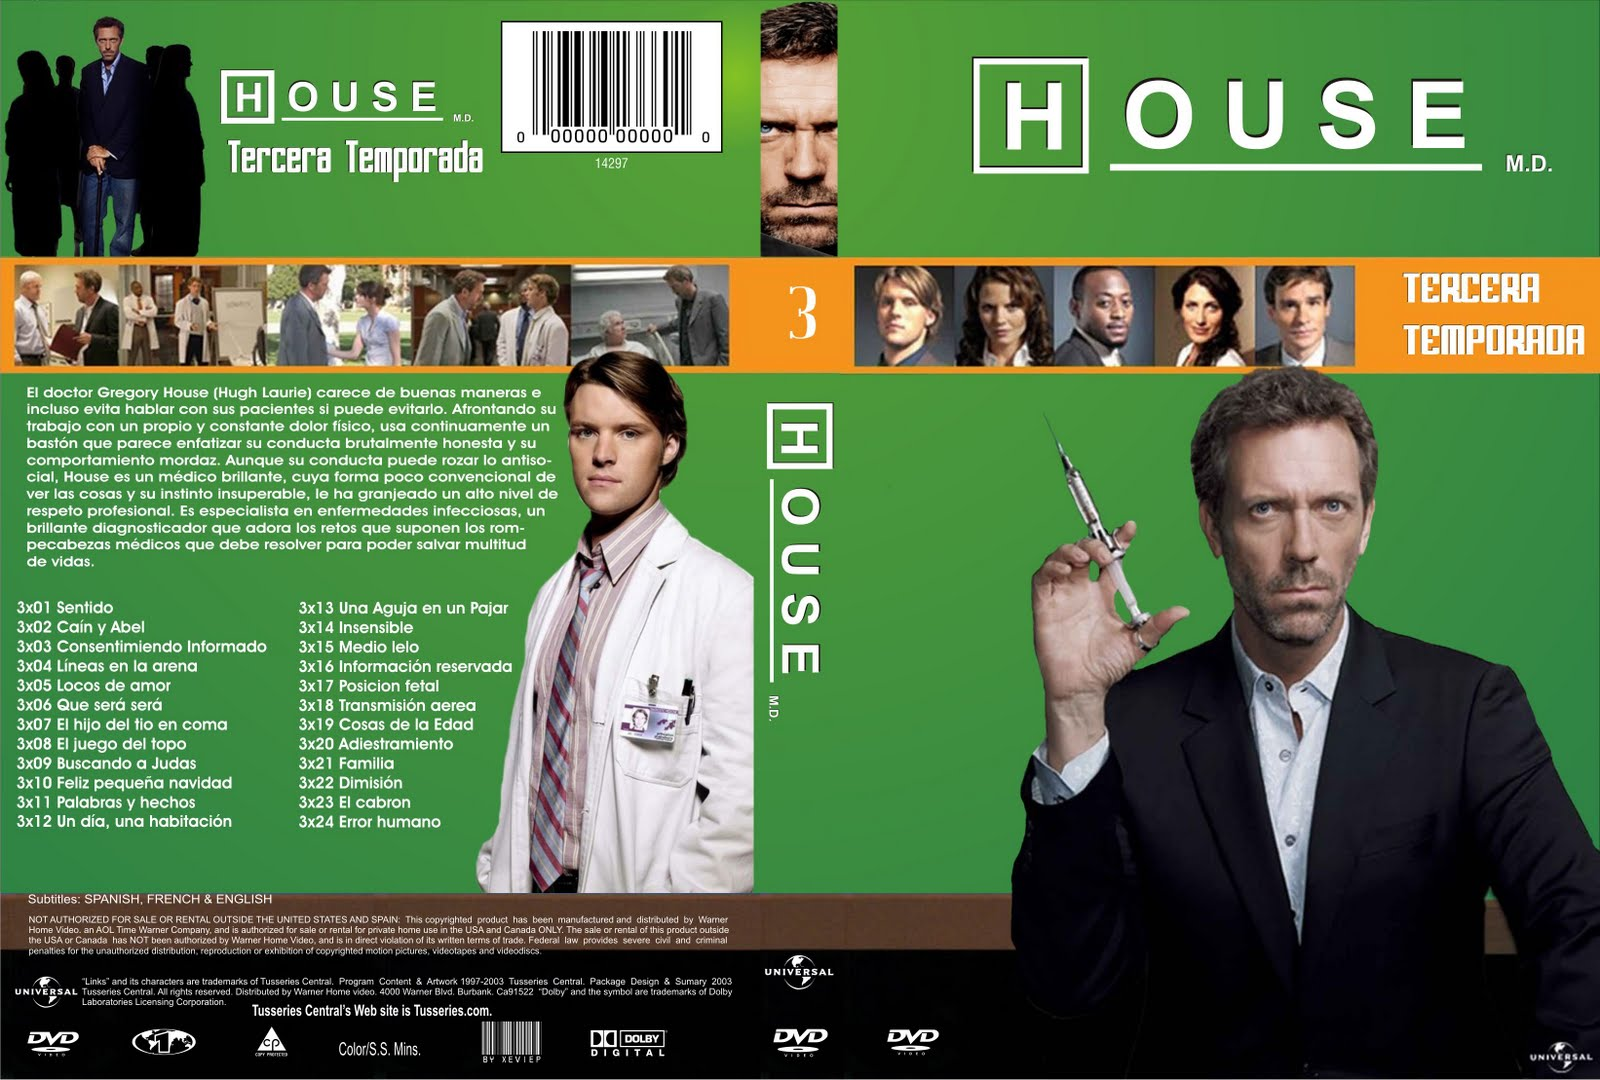 descargar dr house temporada 8 audio latino